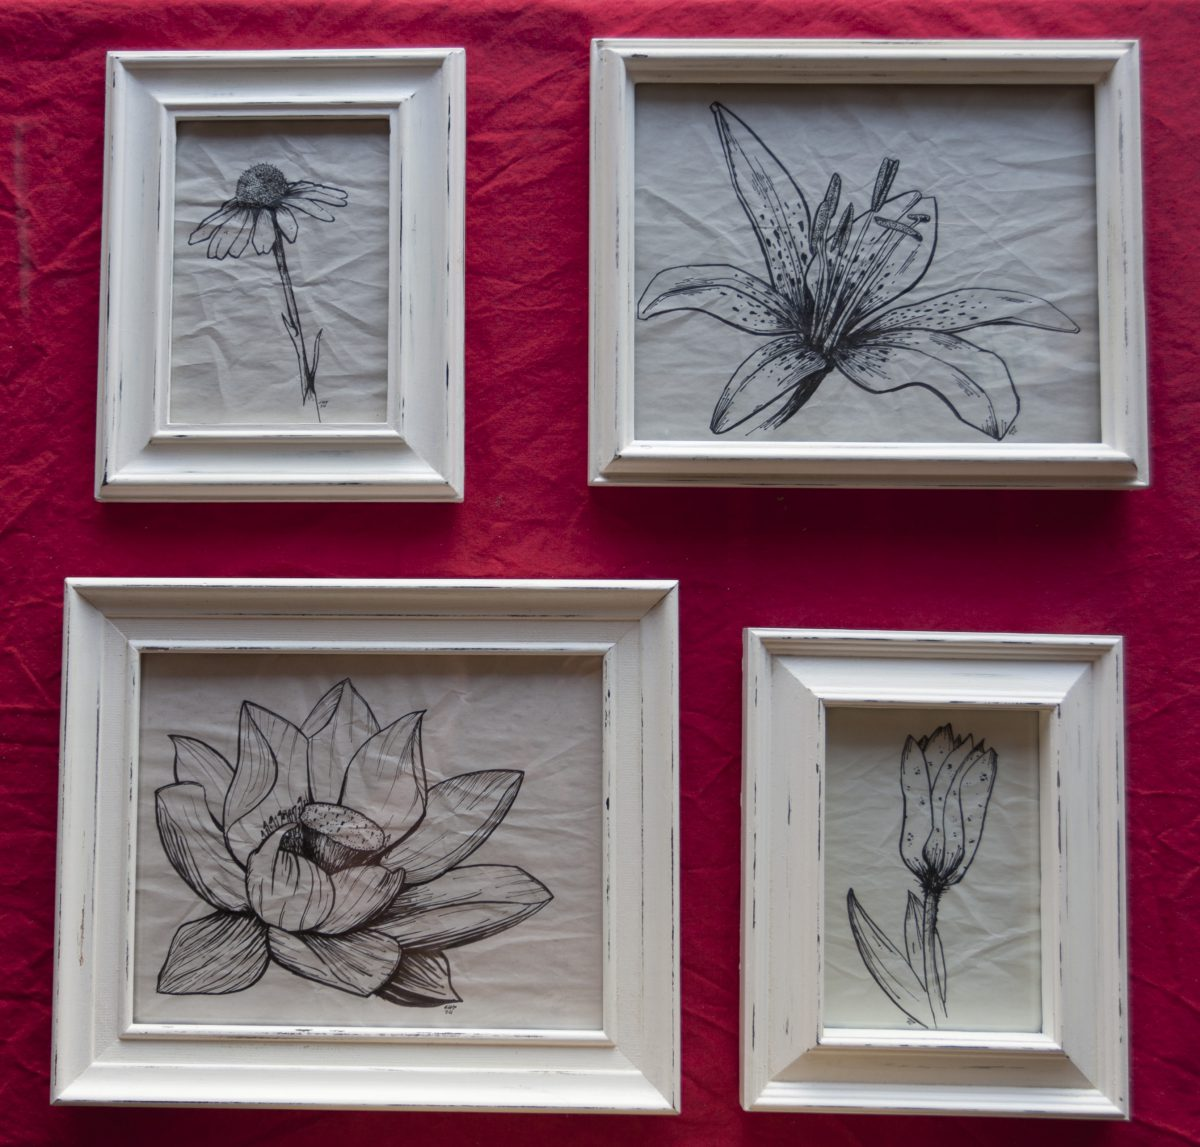 4 Flowers - Pen on paper. 13x18cm & 20x29cm framed, ch3, pen, paper